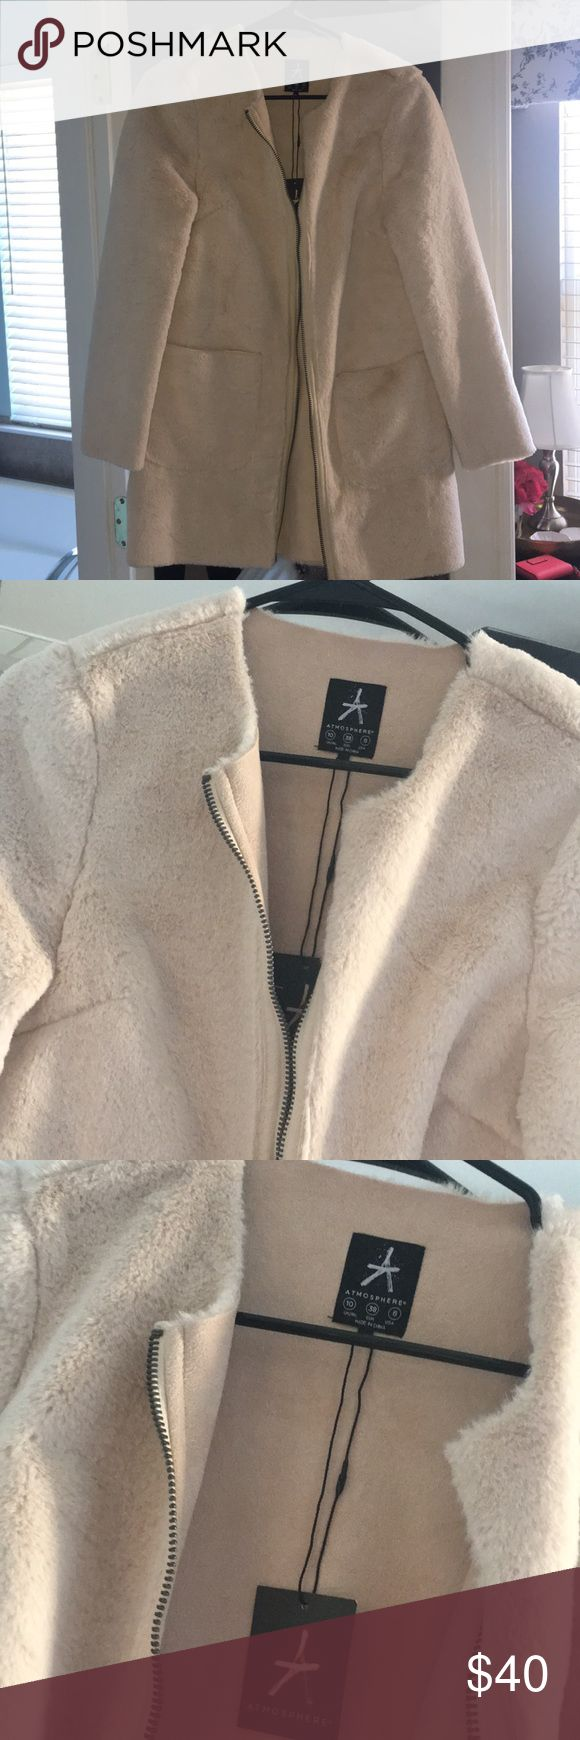 Faux fur Coat Brand new with tags faux fur coat perfect for winter! Super soft and wam very chic! primark Jackets & Coats